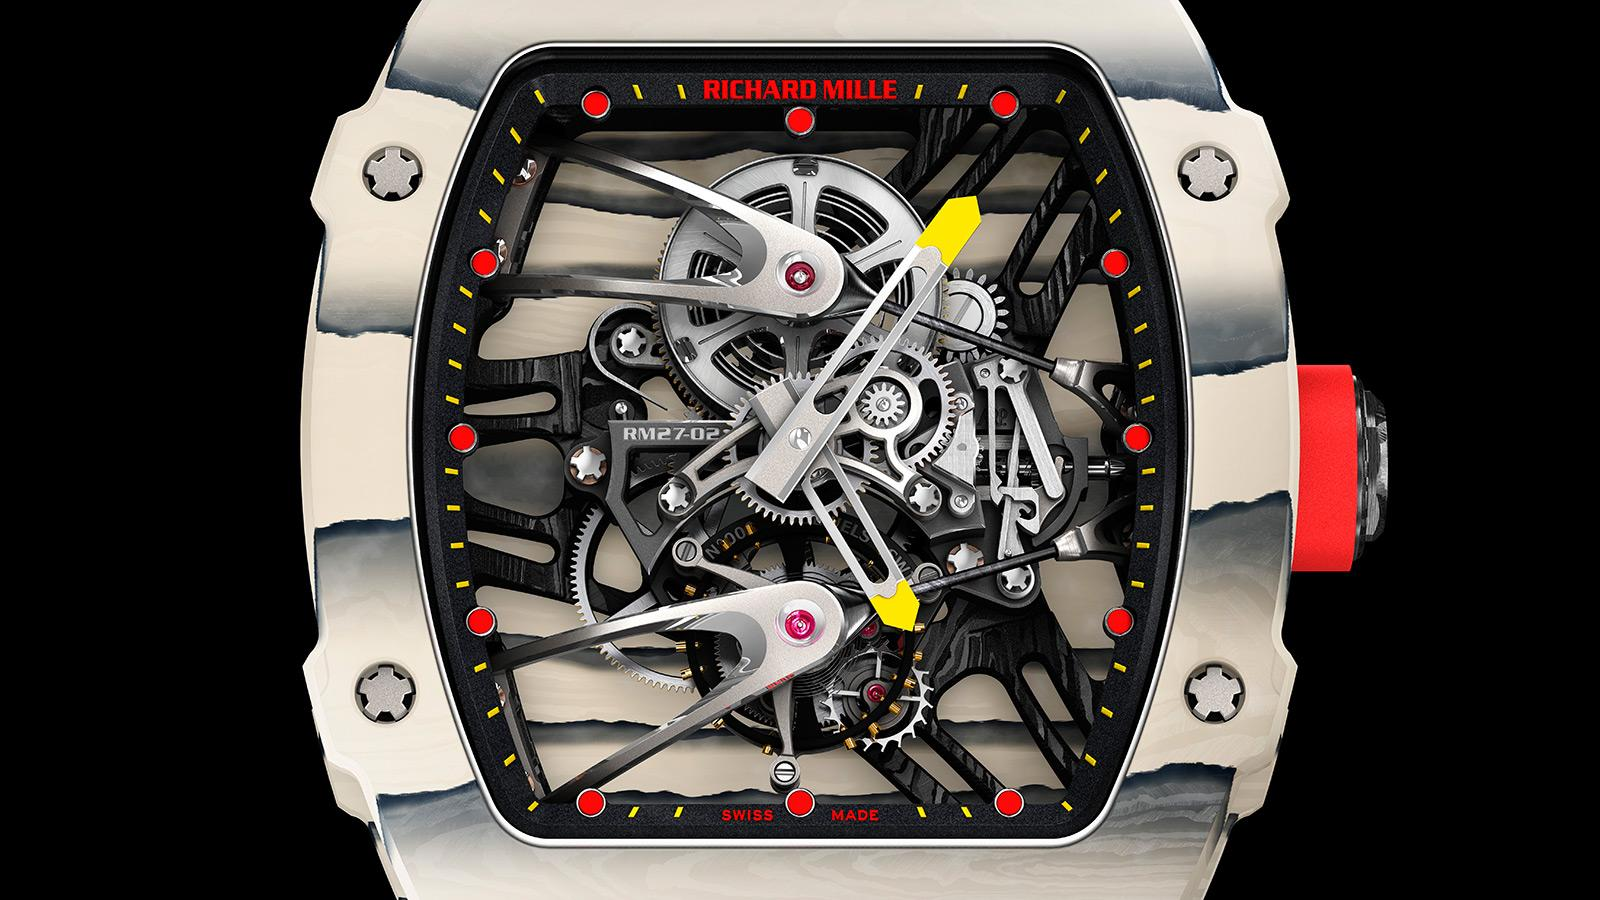 The Details on Rafael Nadal's $775,000 Richard Mille RM27-02 Watch